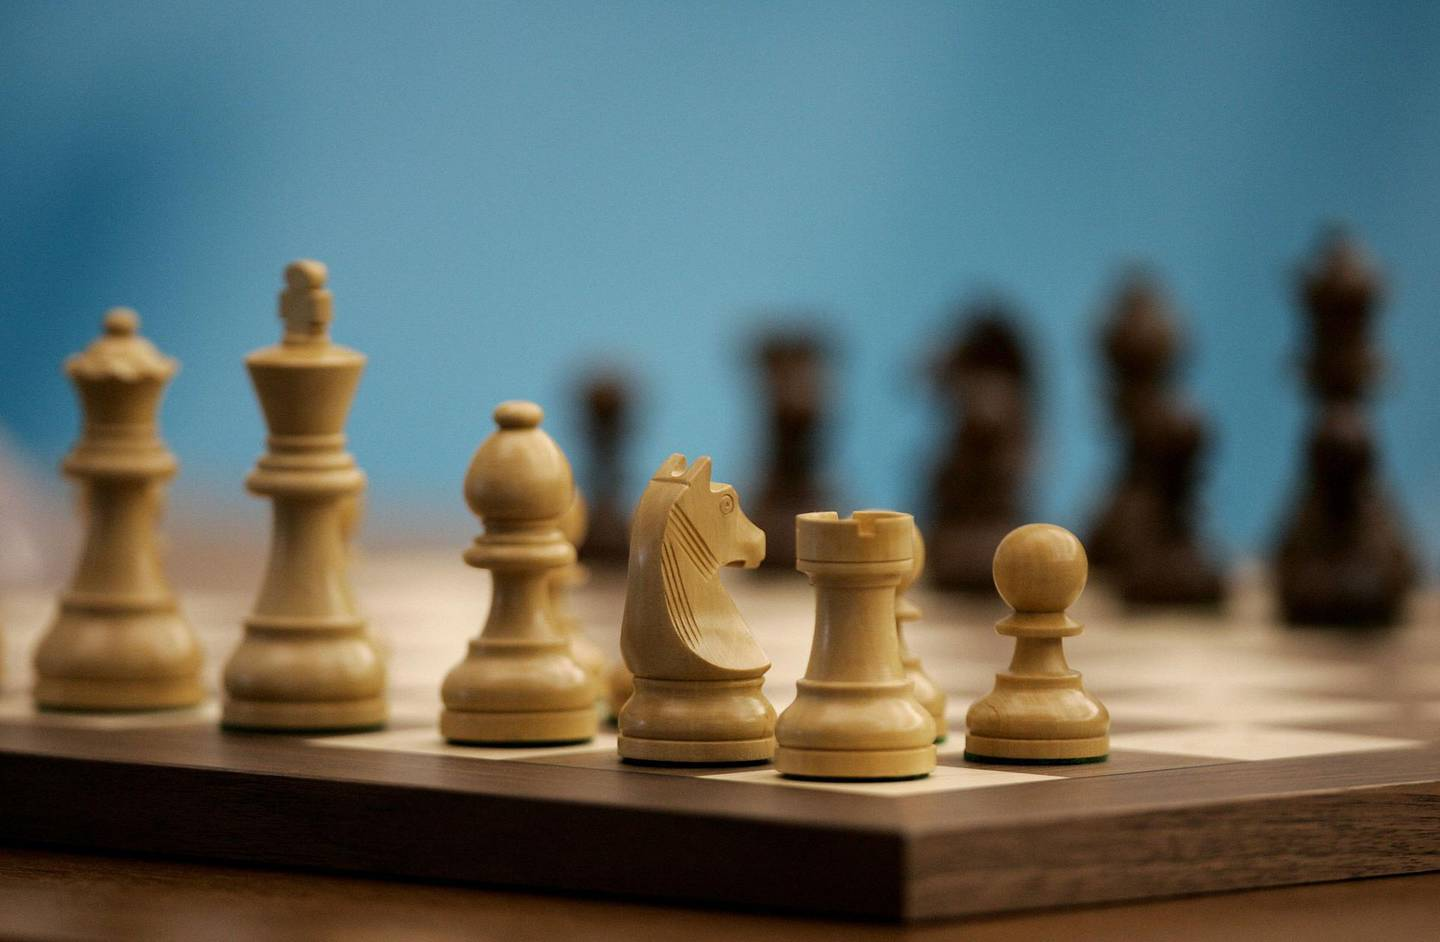 DOHA, QATAR - DECEMBER 02:  A detail of the chess board before the start of the Men's and Women's Rapid Chess Individual during the 15th Asian Games Doha 2006 at the Khalifa Tennis & Squash Complex on December 2, 2006 in Doha, Qatar.  (Photo by Streeter Lecka/Getty Images for DAGOC)